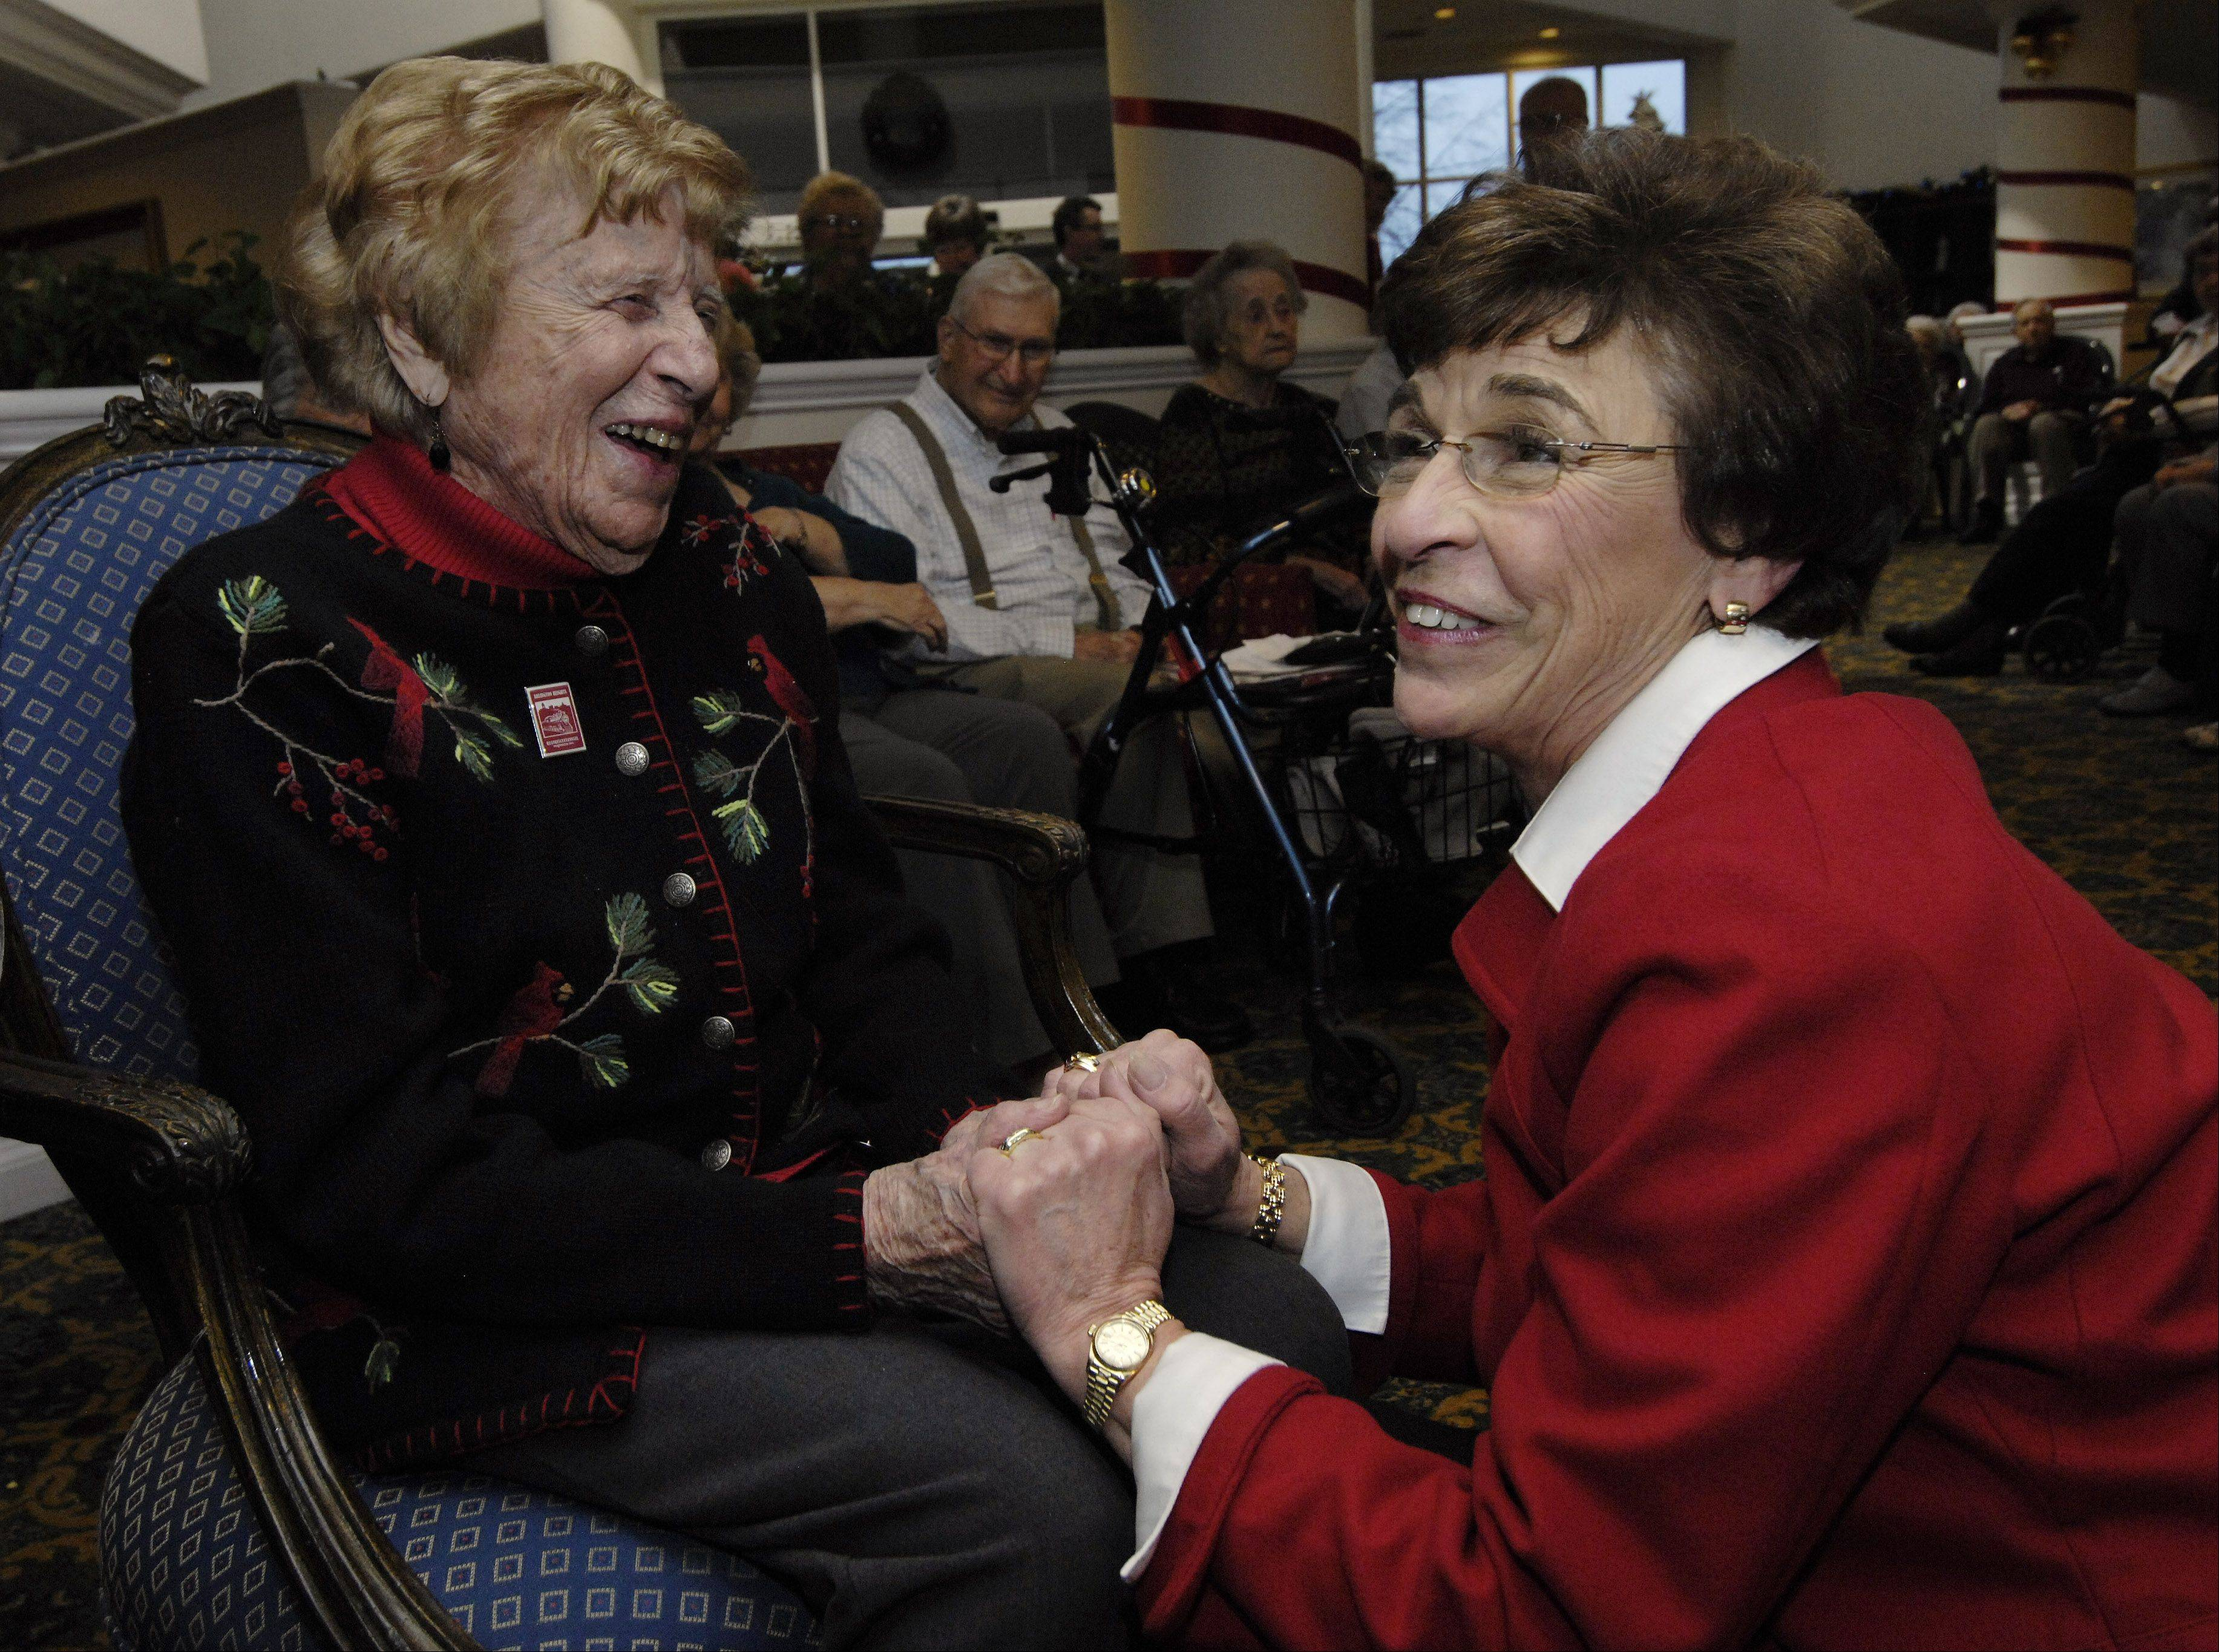 JOE LEWNARD/jlewnard@dailyherald.comArlington Heights Mayor Arlene Mulder, right, helped Lois Arbanas celebrate her 105th birthday at The Moorings of Arlington Heights.